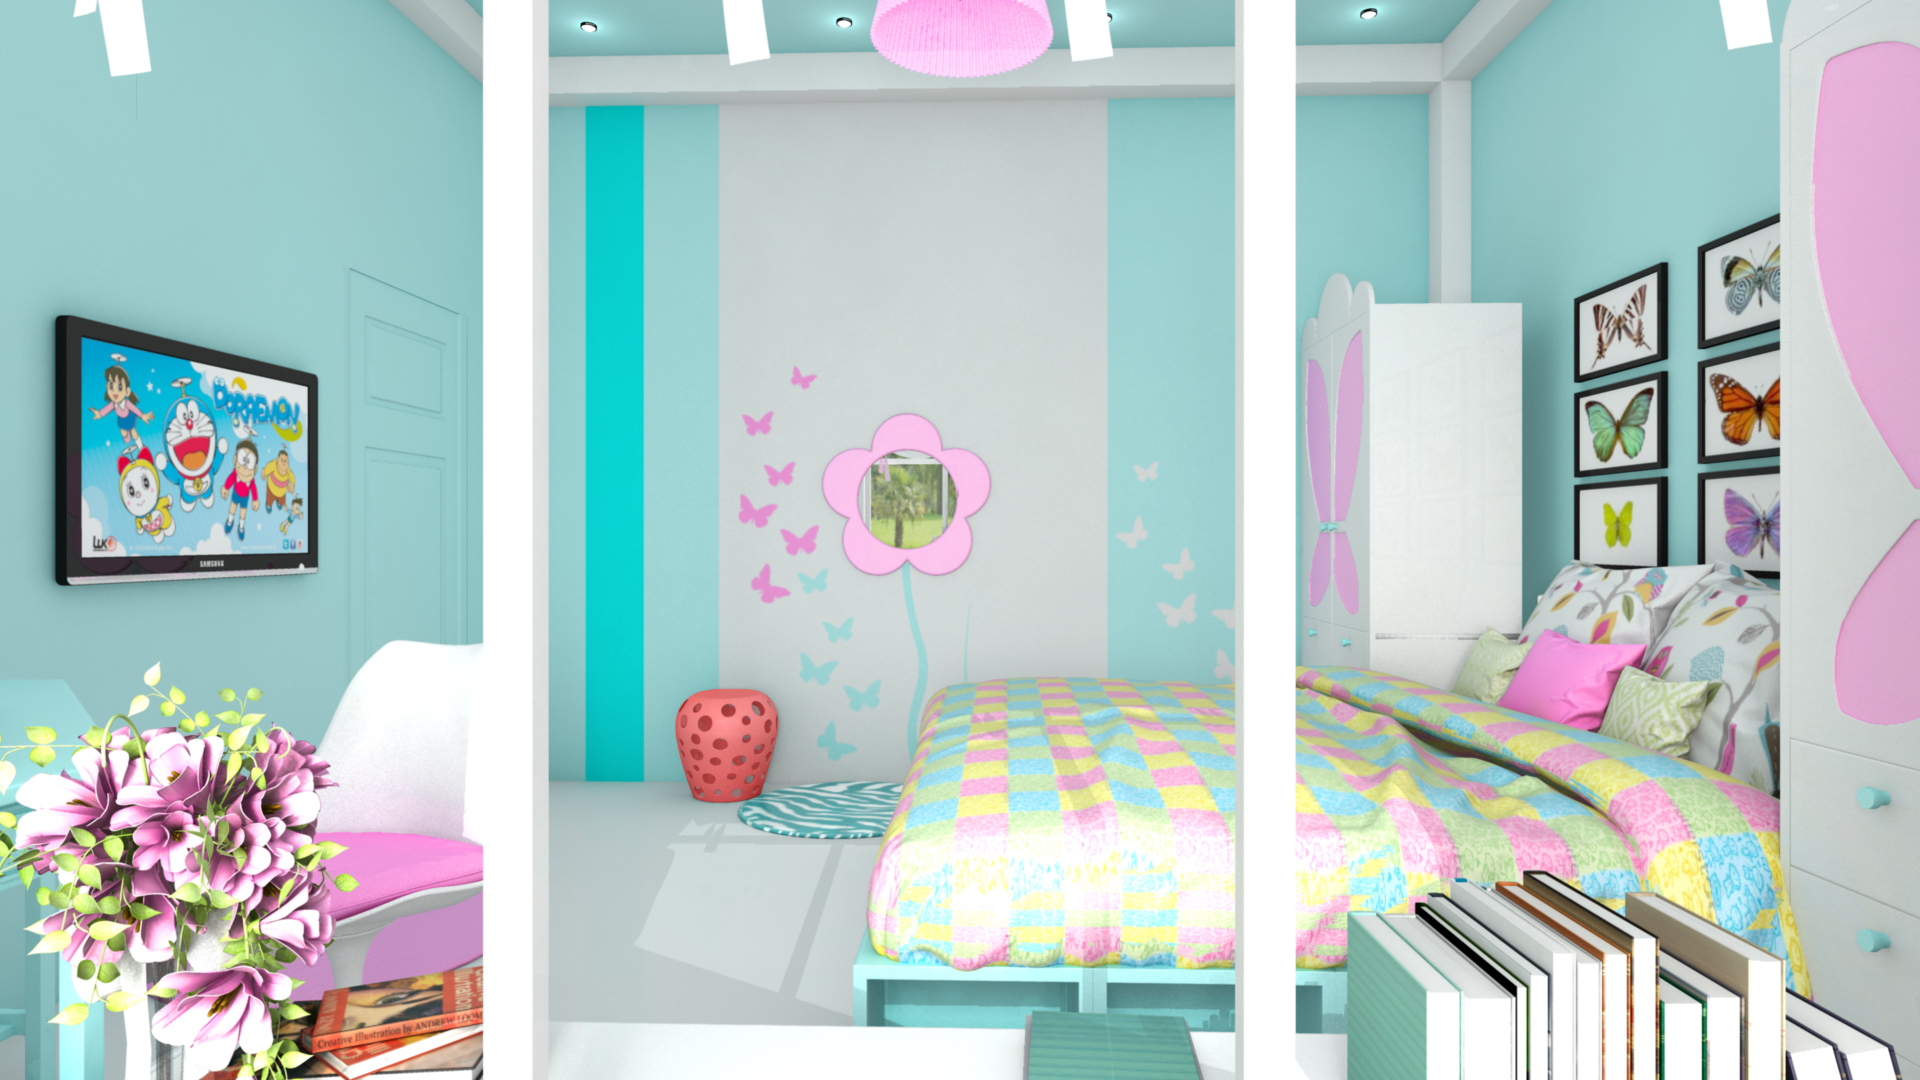 Interior Design ( Young Girl Bedroom ) 3D Model